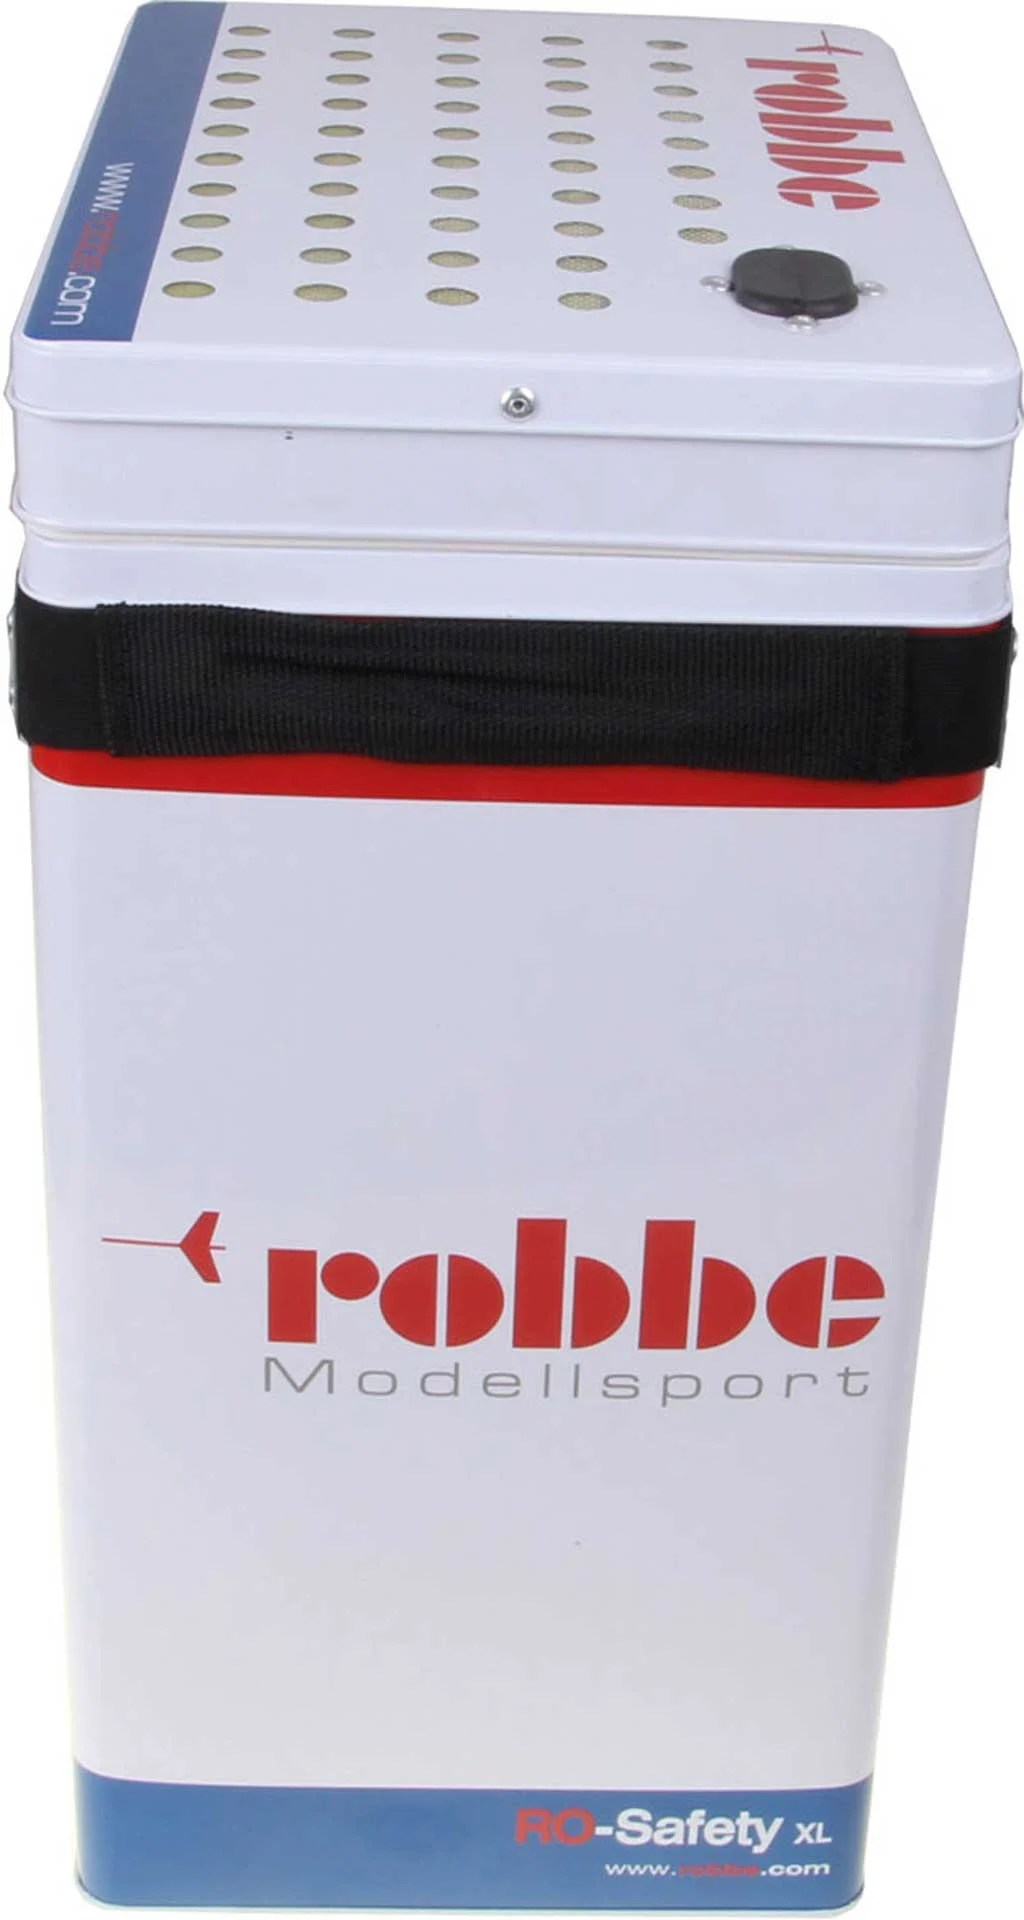 Robbe Modellsport Ro Safety Xl Lipo Safe Transport And Charging Case For Lipo Battery Buy Now At Modellbau Lindinger